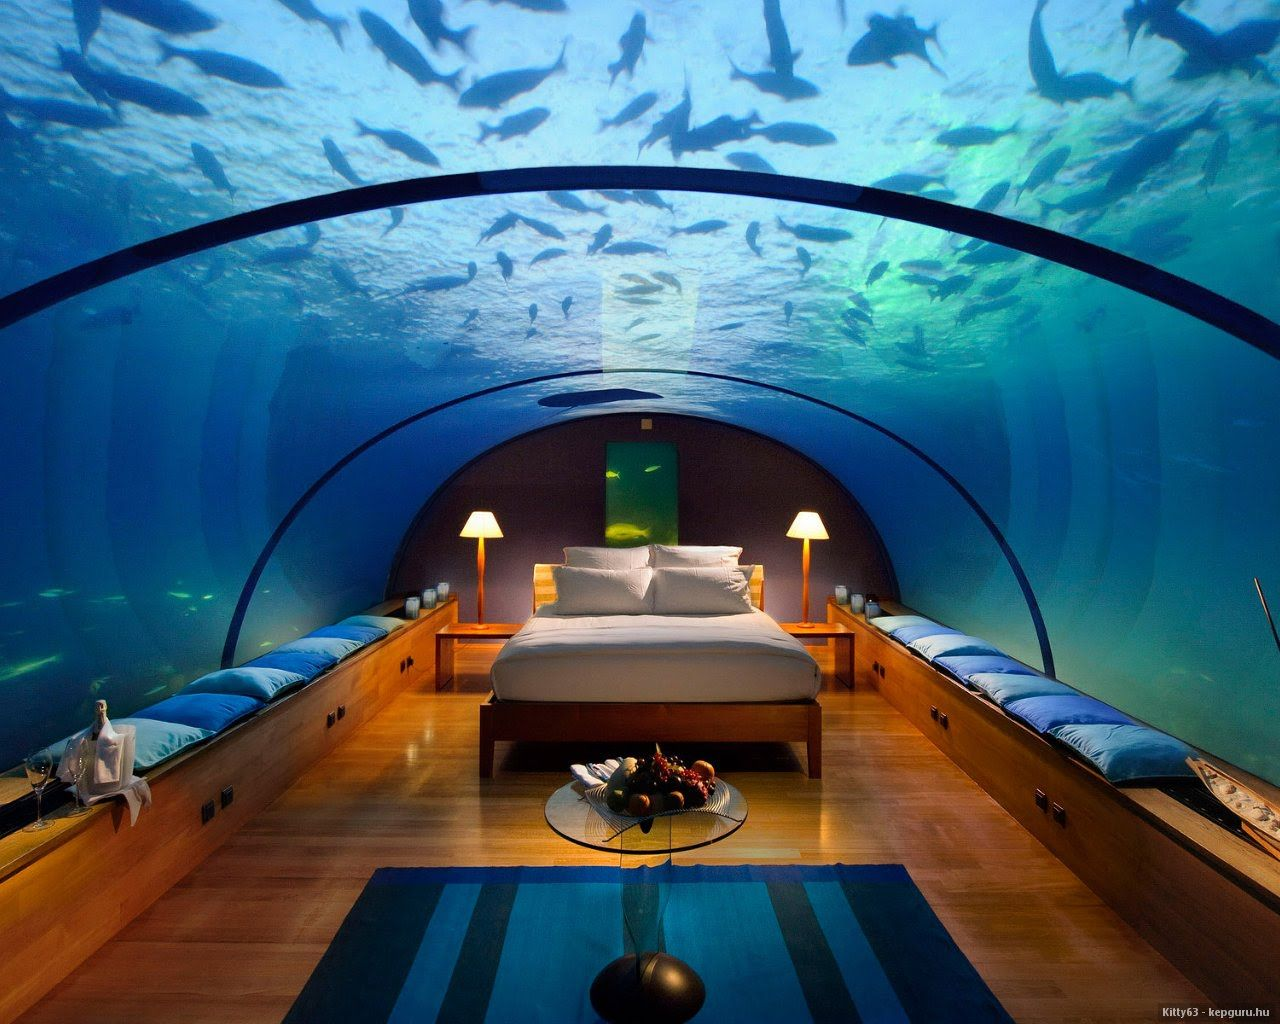 Fish tank for feng shui - I M Not Sure I D Actually Be Able To Sleep In This Room